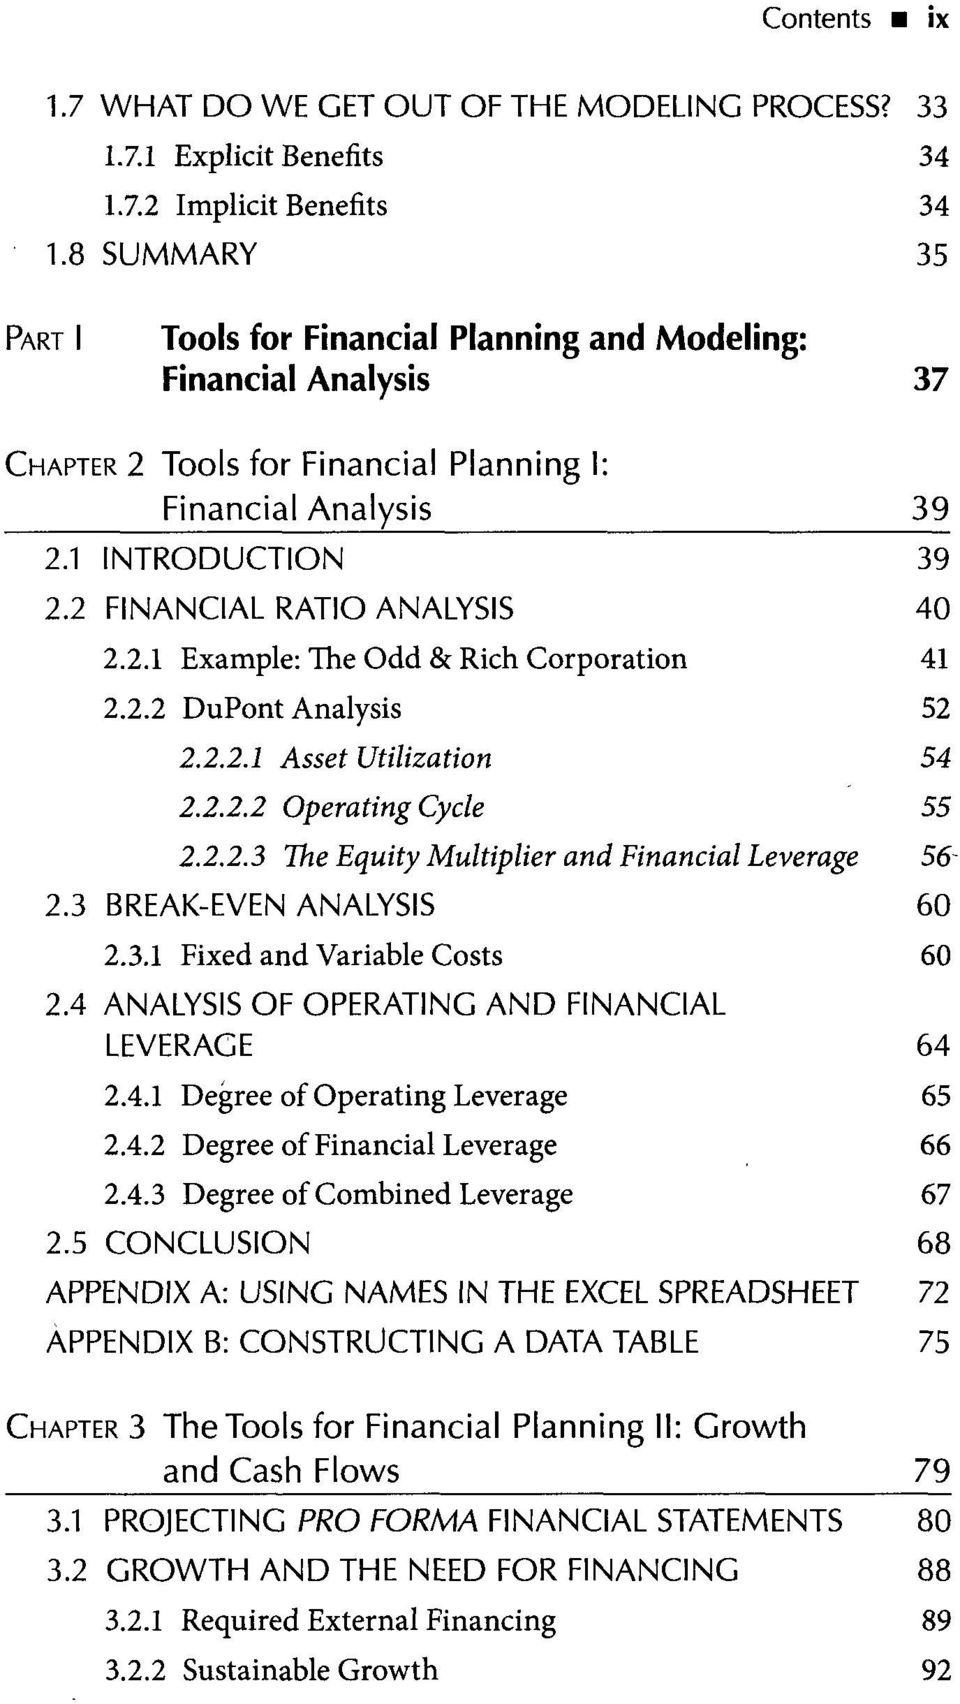 2 FINANCIAL RATIO ANALYSIS 40 2.2.1 Example: The Odd & Rich Corporation 41 2.2.2 DuPont Analysis 52 2.2.2.1 Asset Utilization 54 2.2.2.2 Operating Cycle 55 2.2.2.3 The Equity Multiplier and Financial Leverage 56 23 BREAK-EVEN ANALYSIS 60 2.